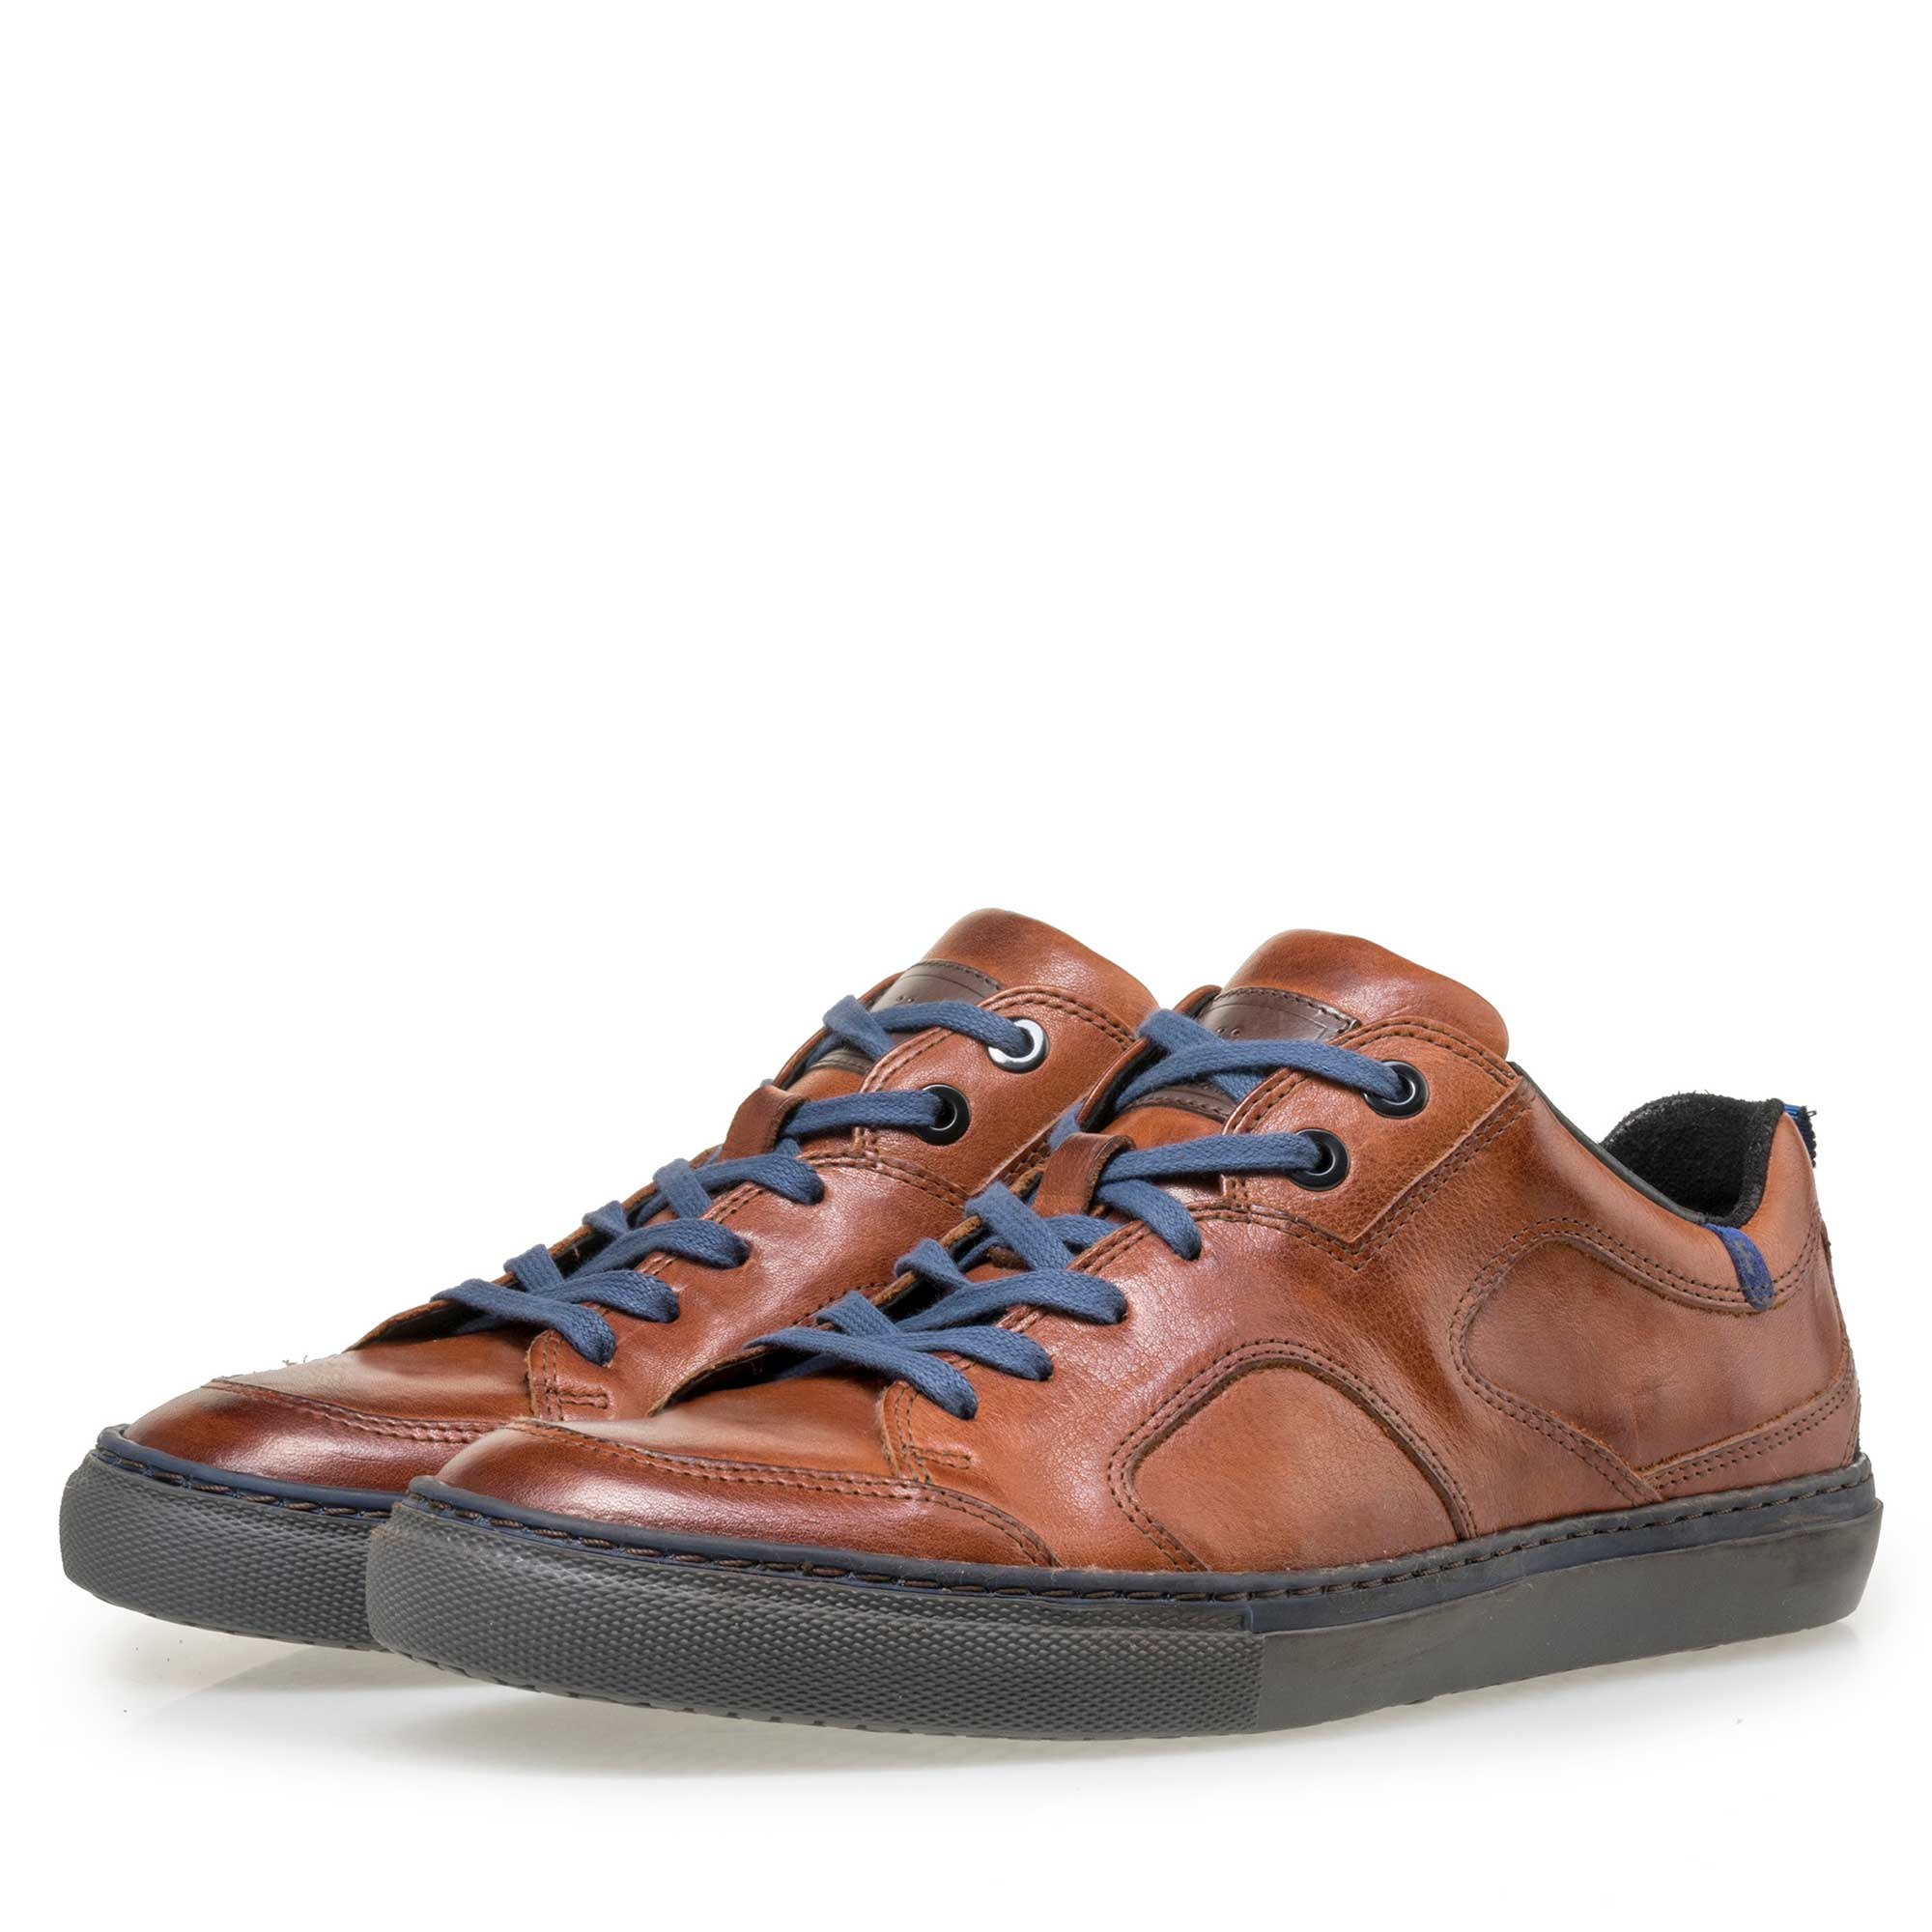 14422/10 - Floris van Bommel men's cognac-coloured leather sneaker